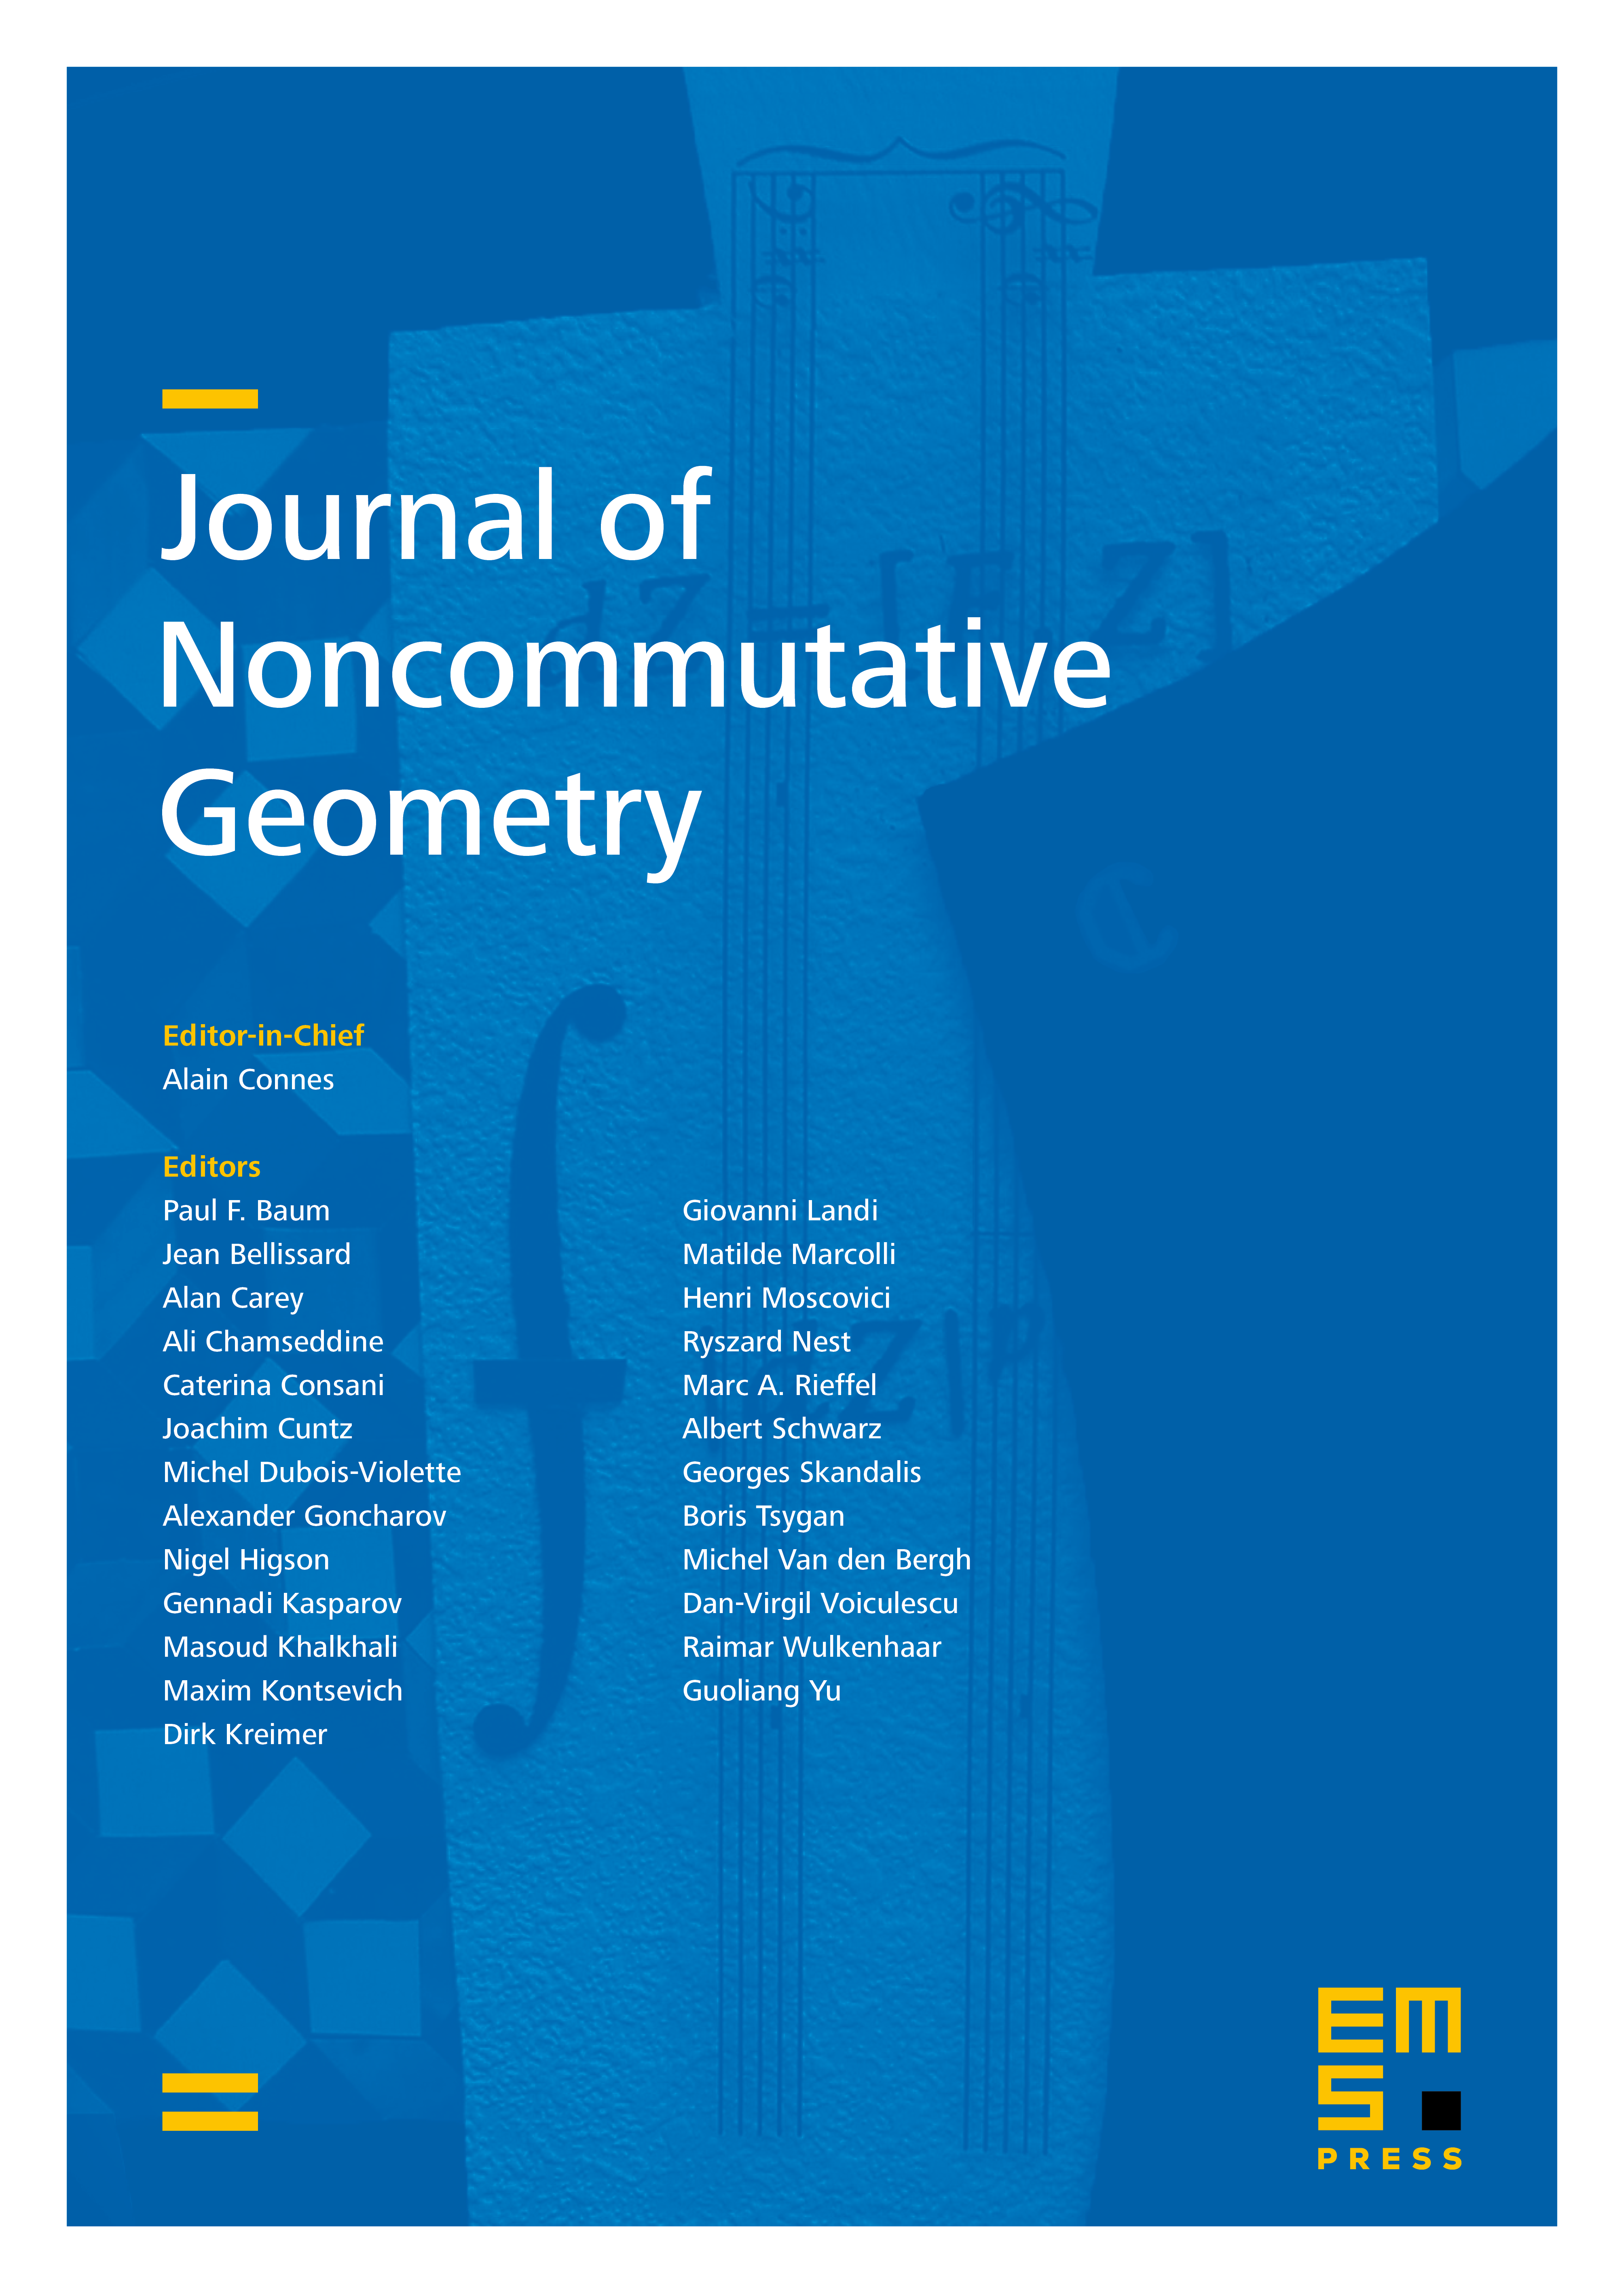 Journal of Noncommutative Geometry cover